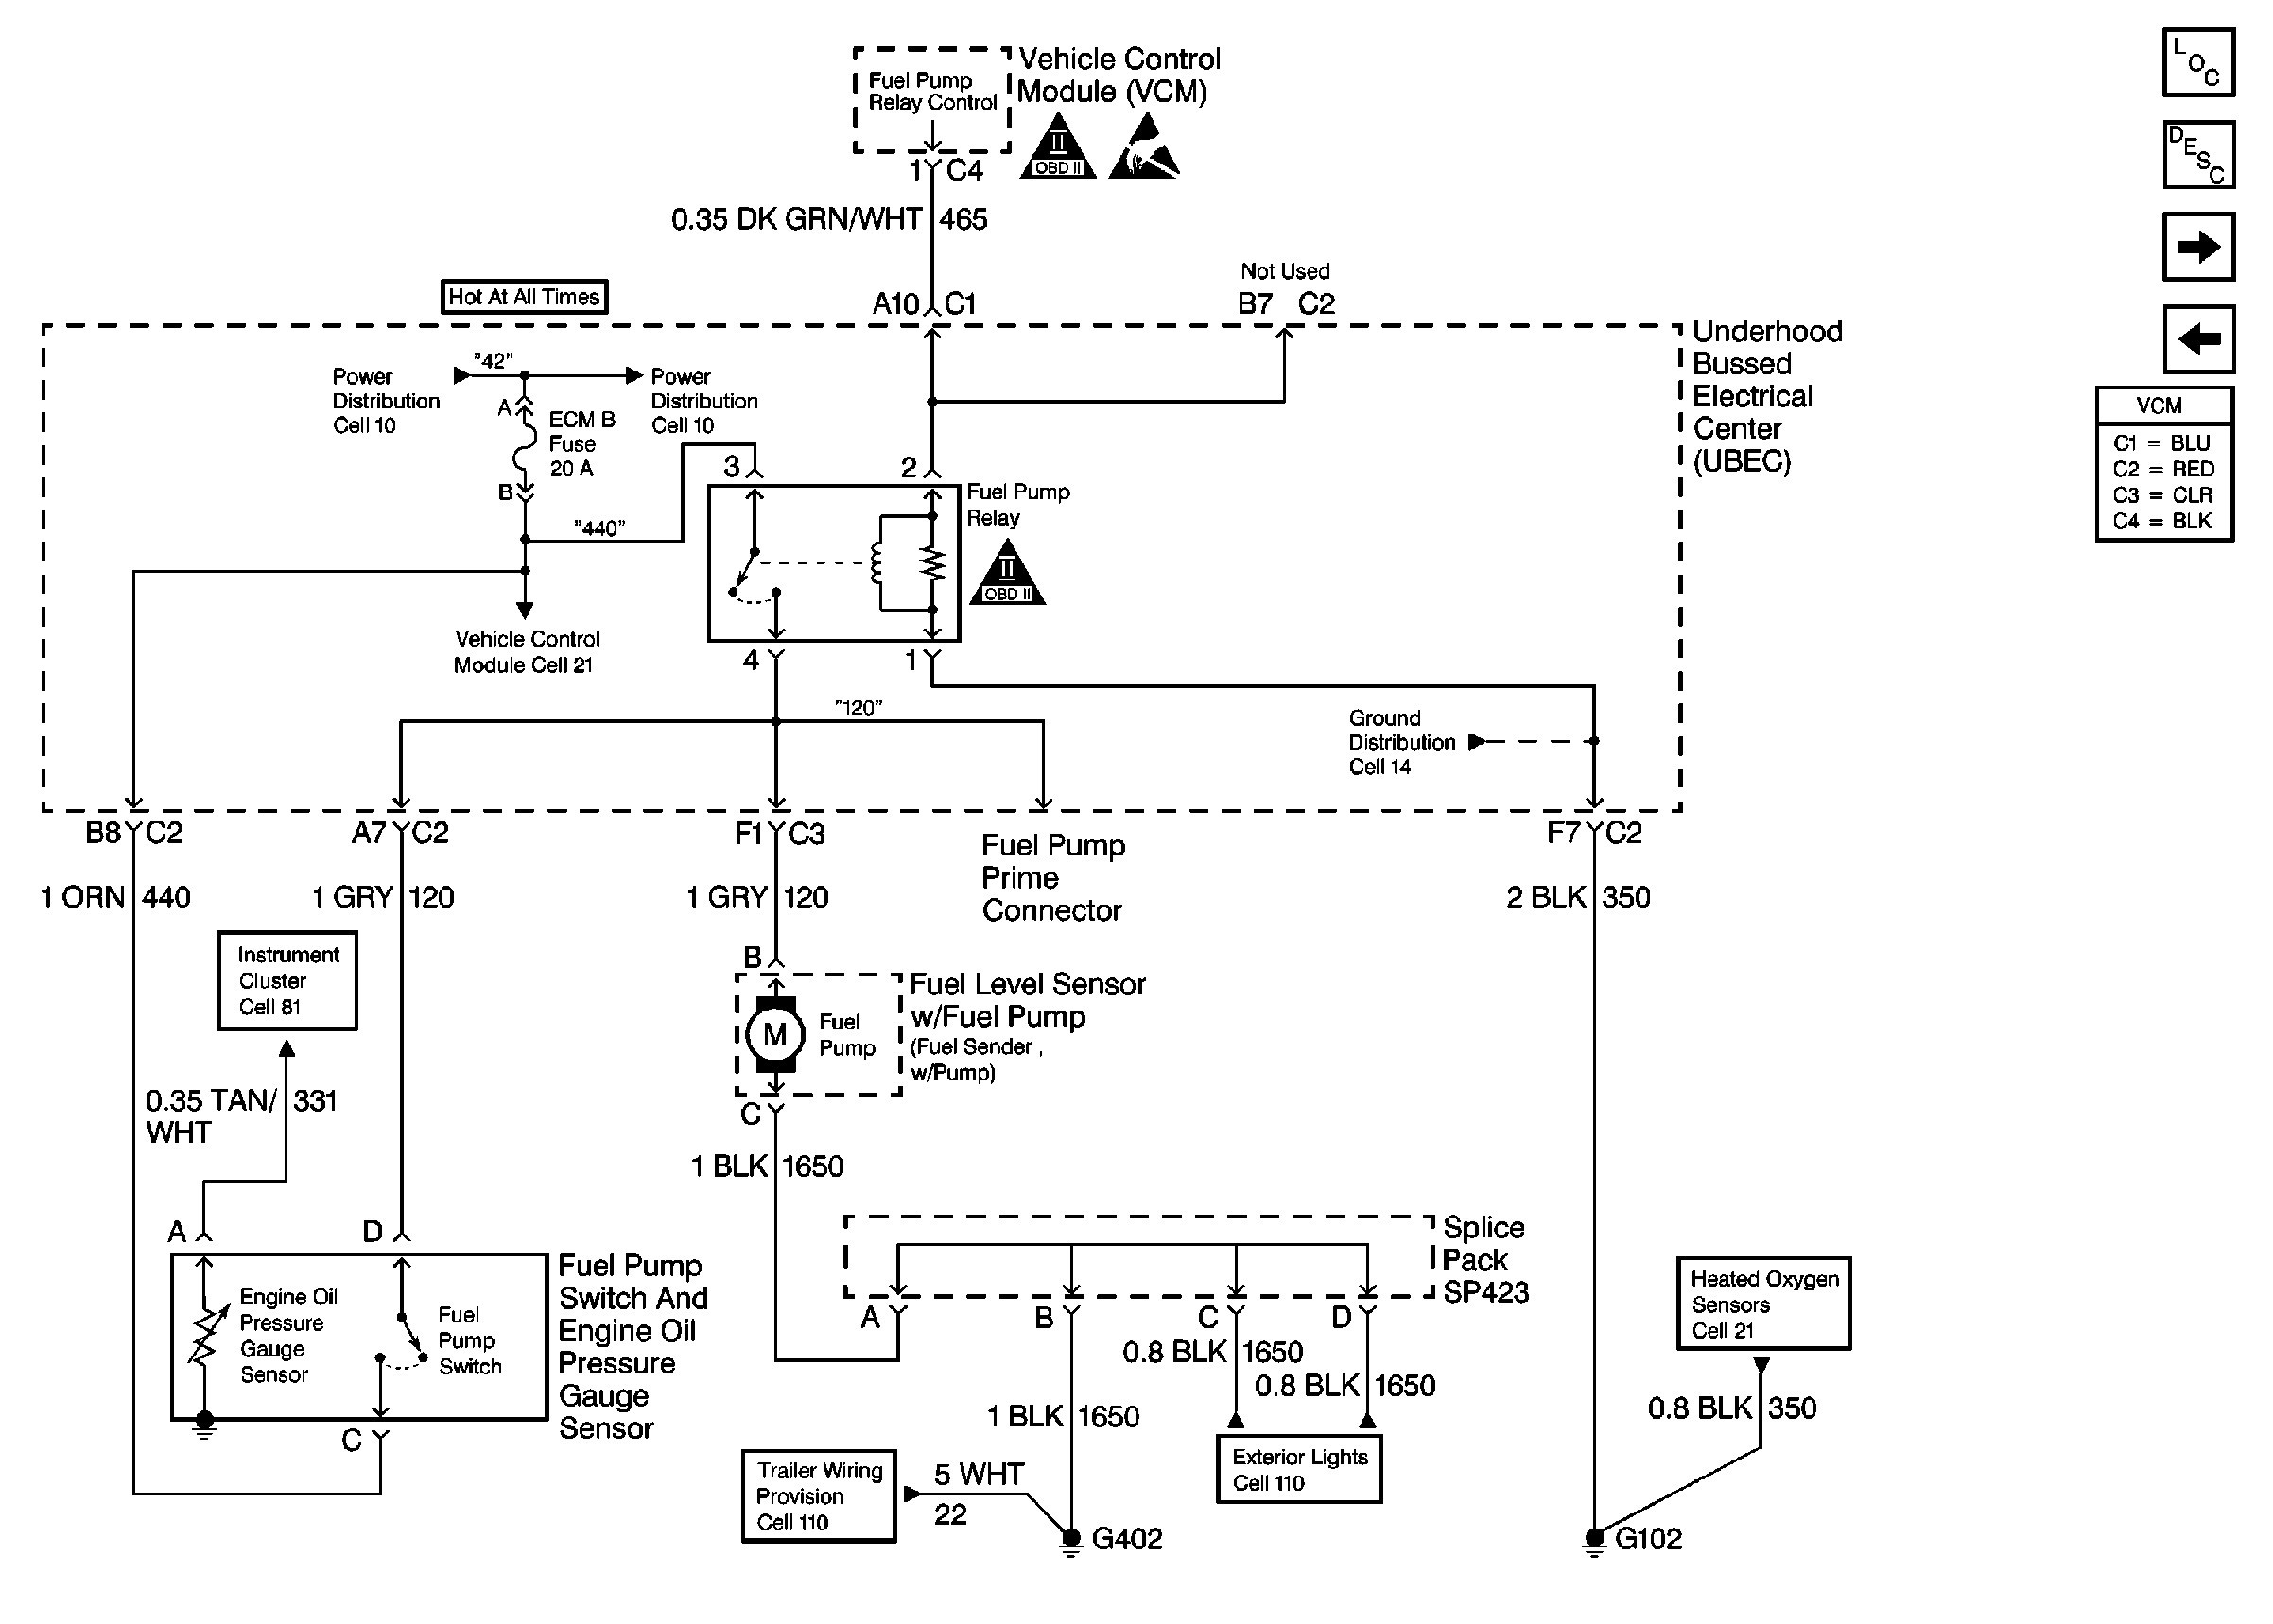 Chevrolet S10 Wiring Diagram 1998 Chevy S10 2 2 Engine Diagram